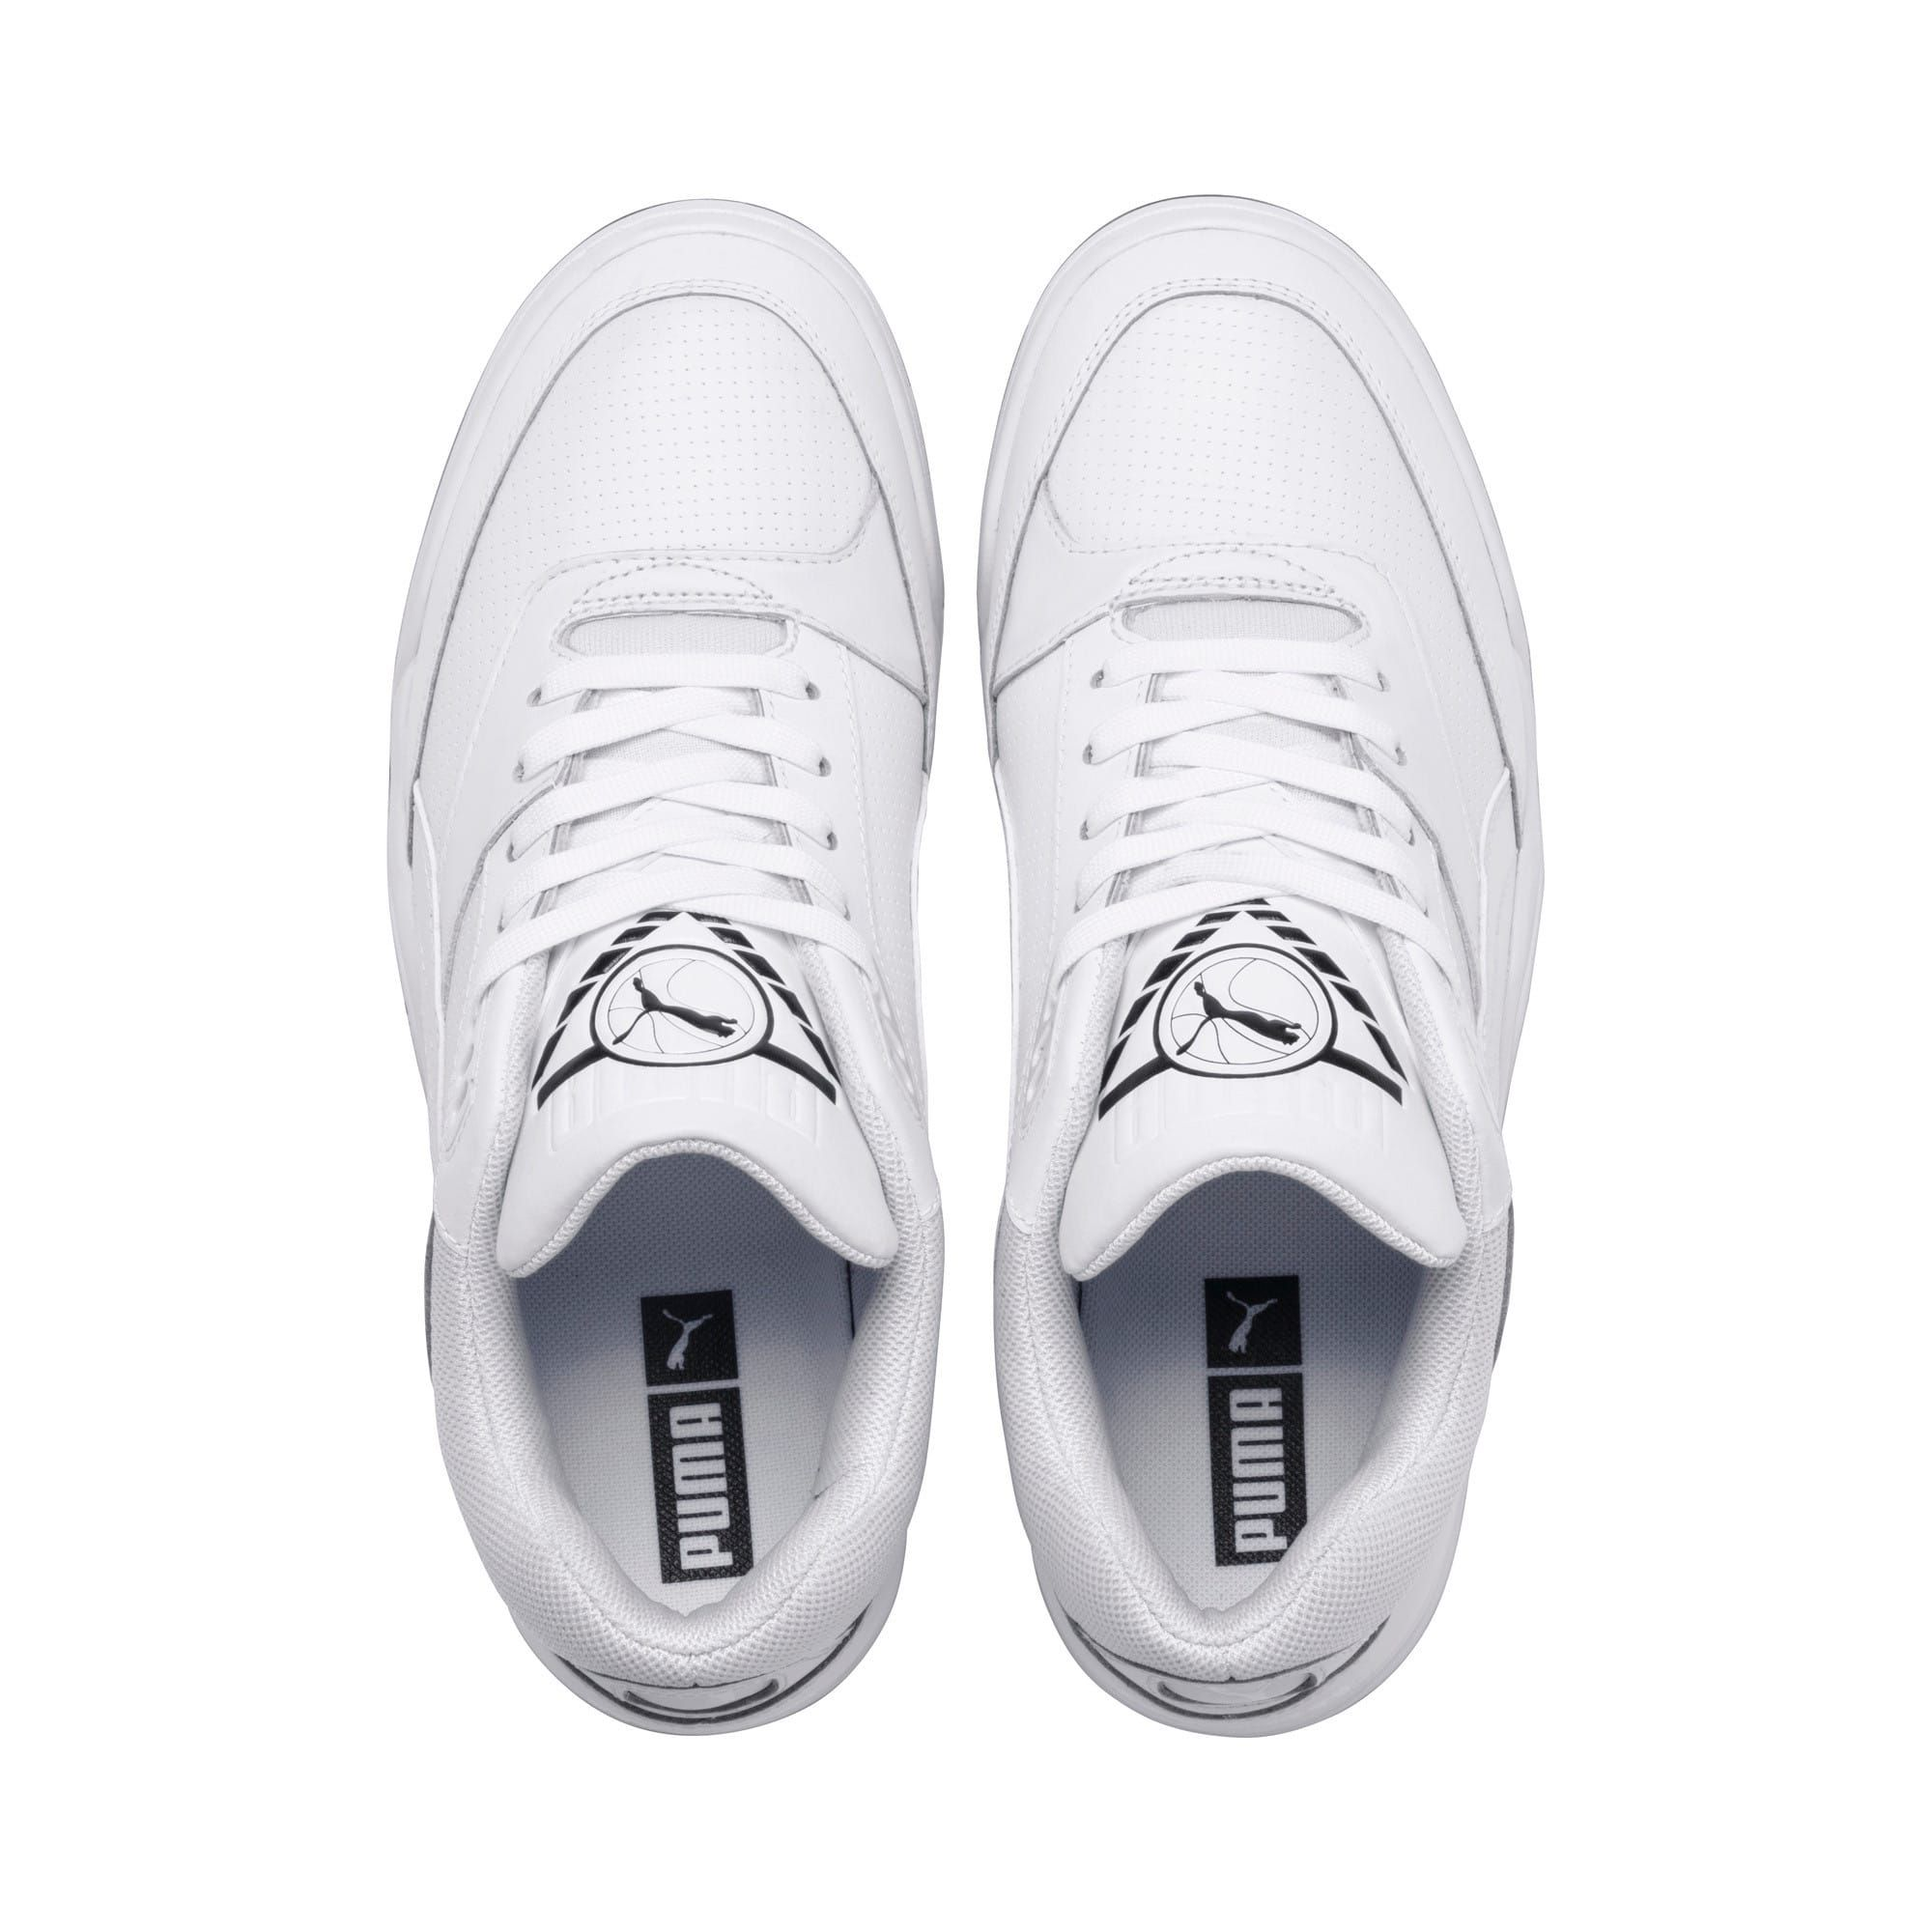 PUMA Palace Guard Mens Basketball Trainers in WhiteGum size 105